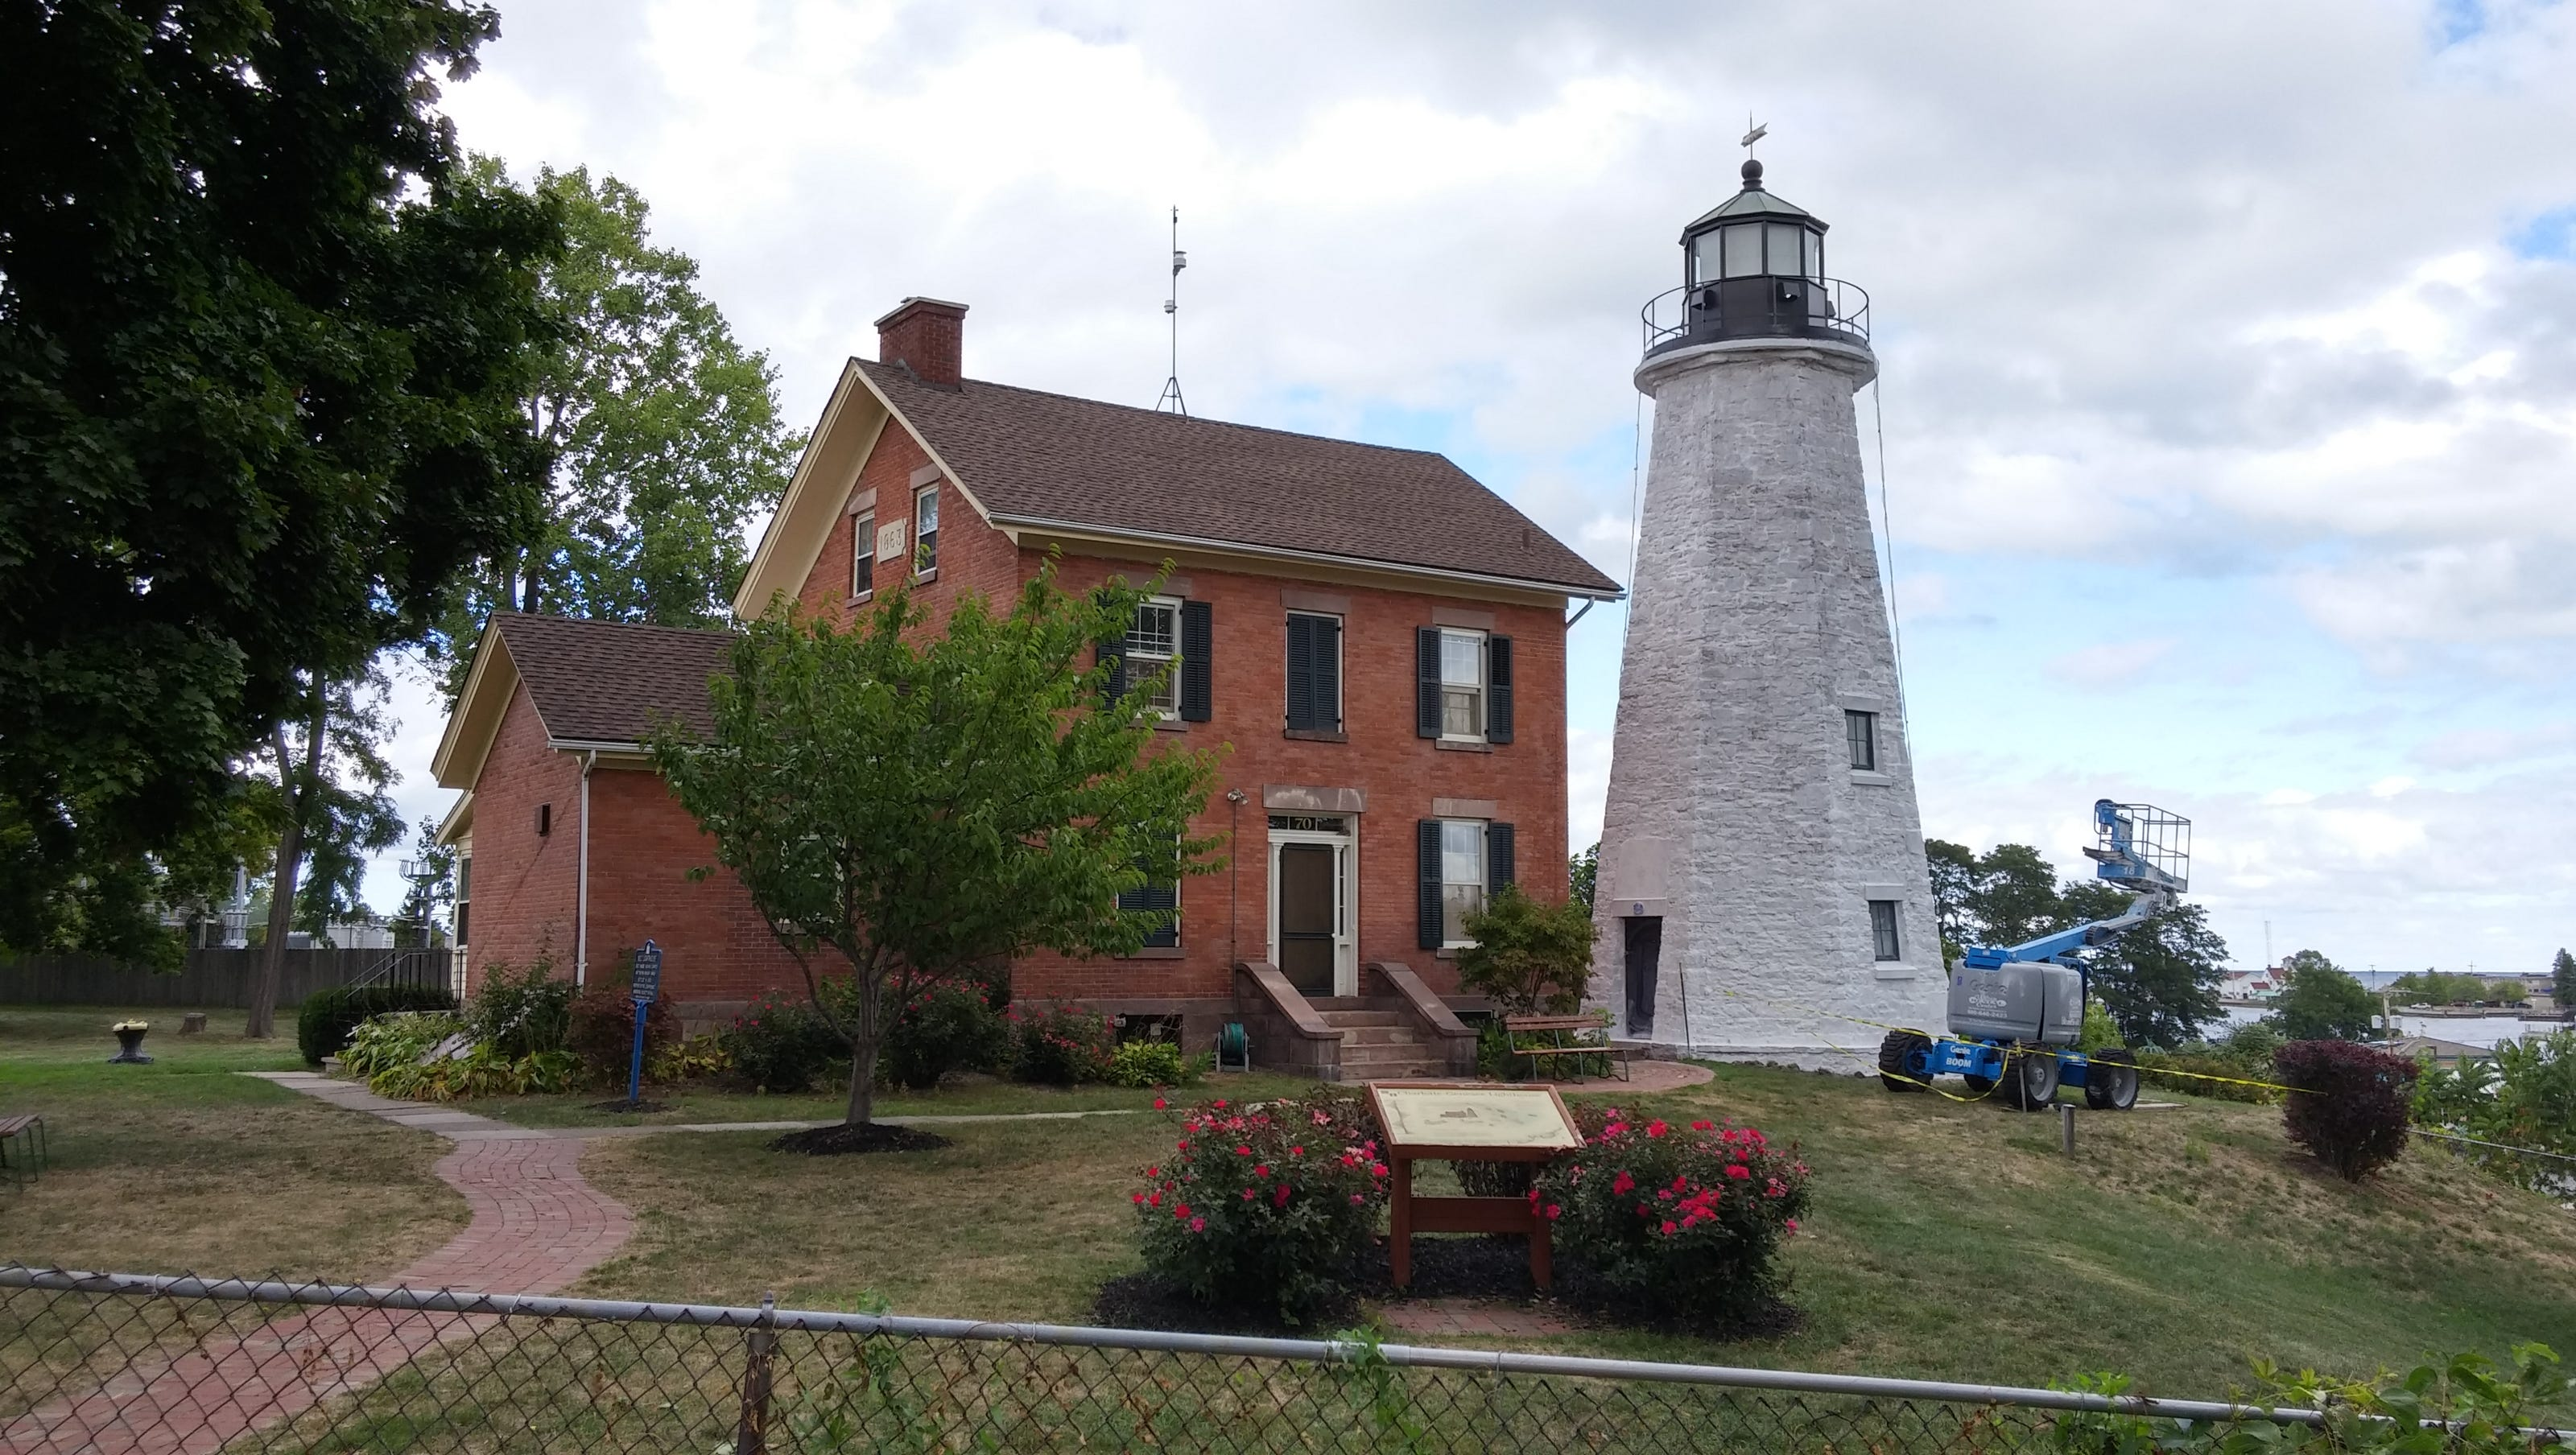 Charlotte Genesee Lighthouse: Charlotte Lighthouse Sports New White Look